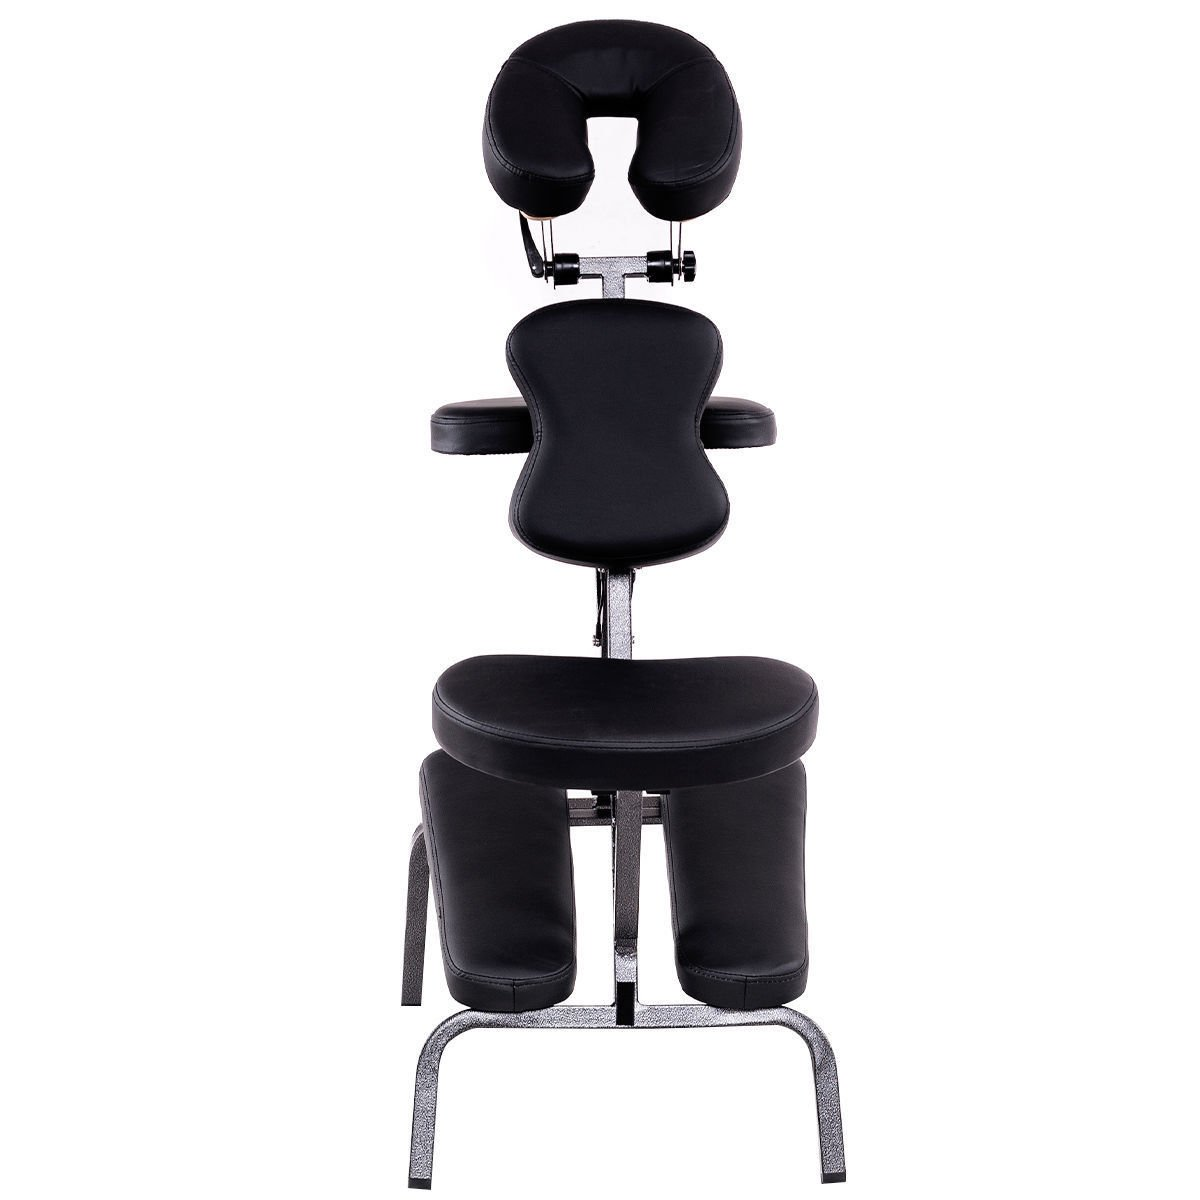 Portable PU Leather Pad Travel Massage Tattoo Spa Chair W/Carrying Bag Black by Allblessings (Image #3)